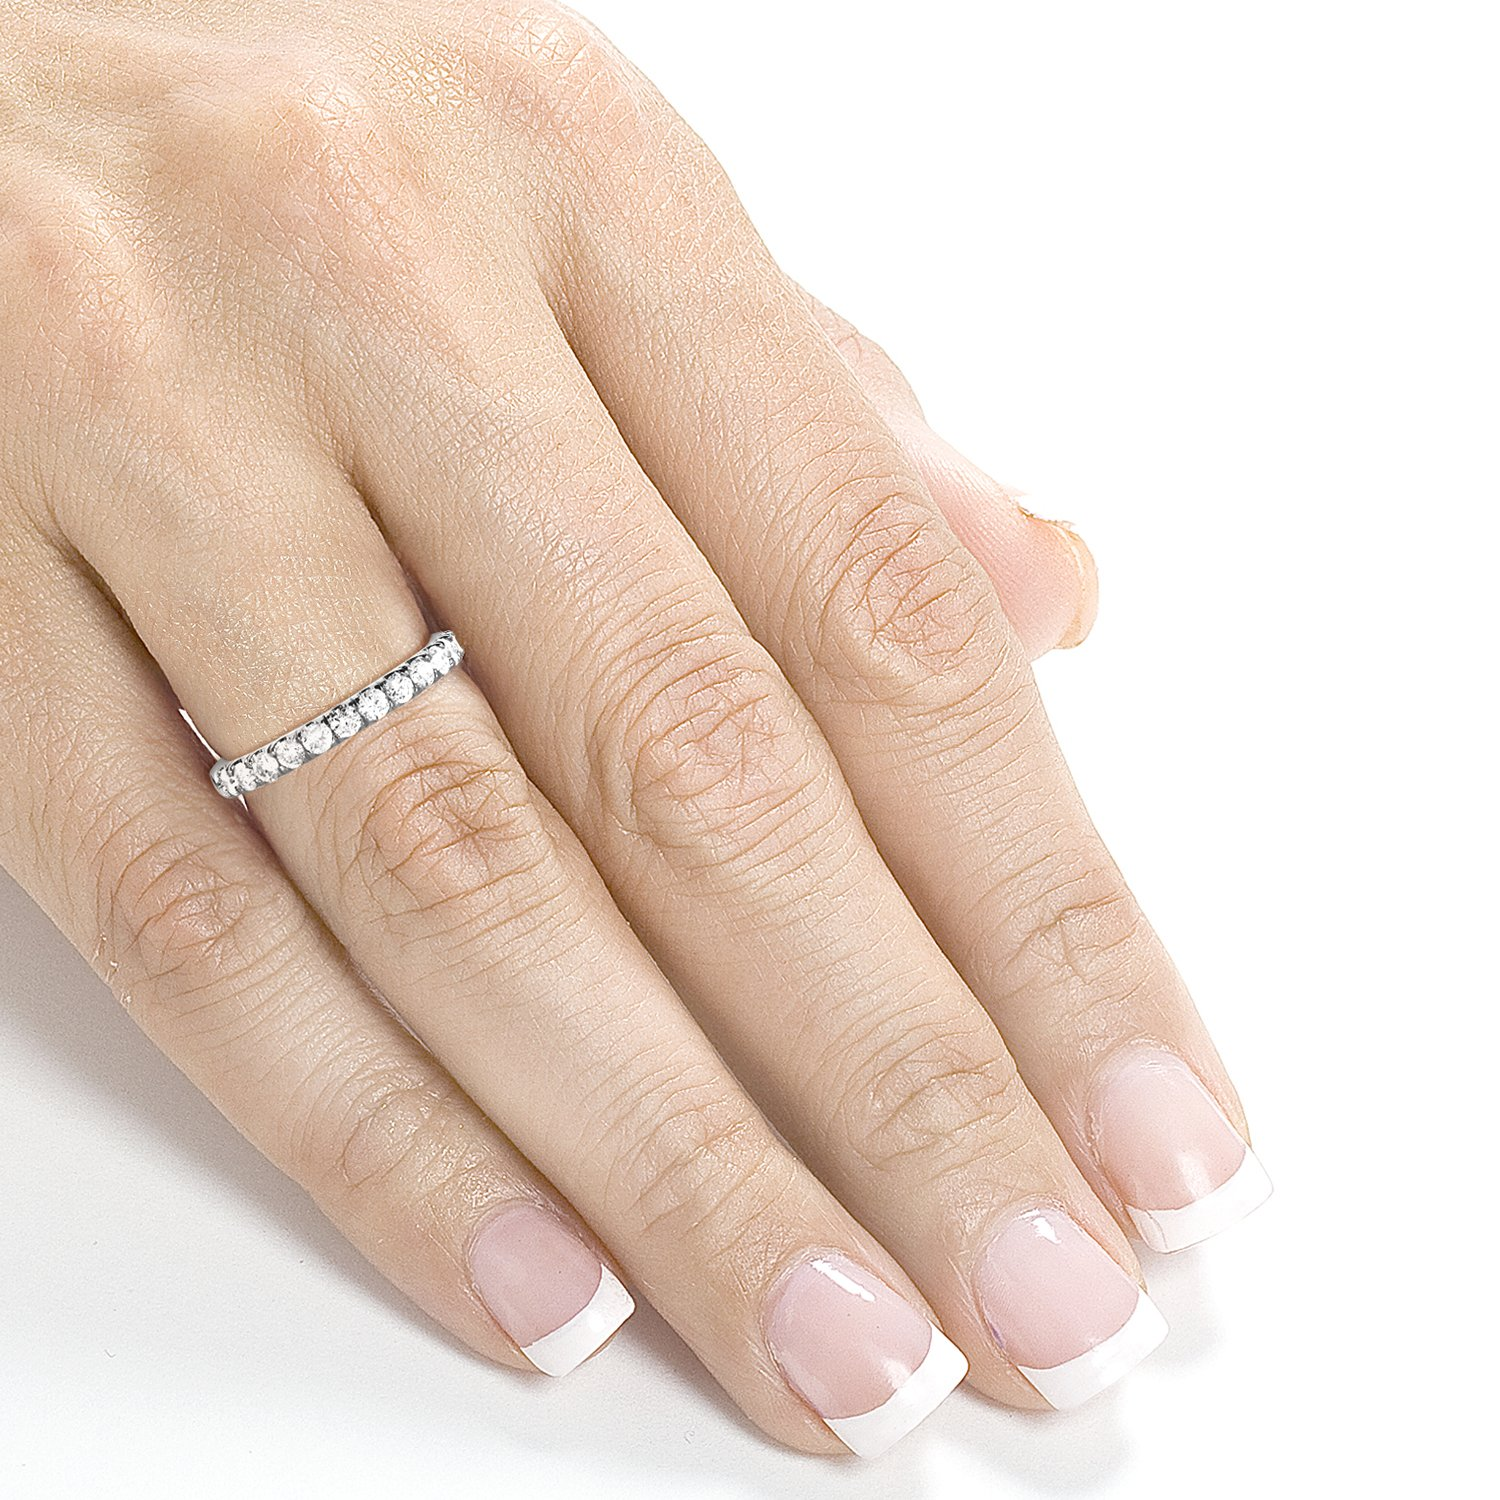 Diamond Comfort Fit Flame French Pave Band 1/2 carat (ctw) in 14K White Gold by Kobelli (Image #4)